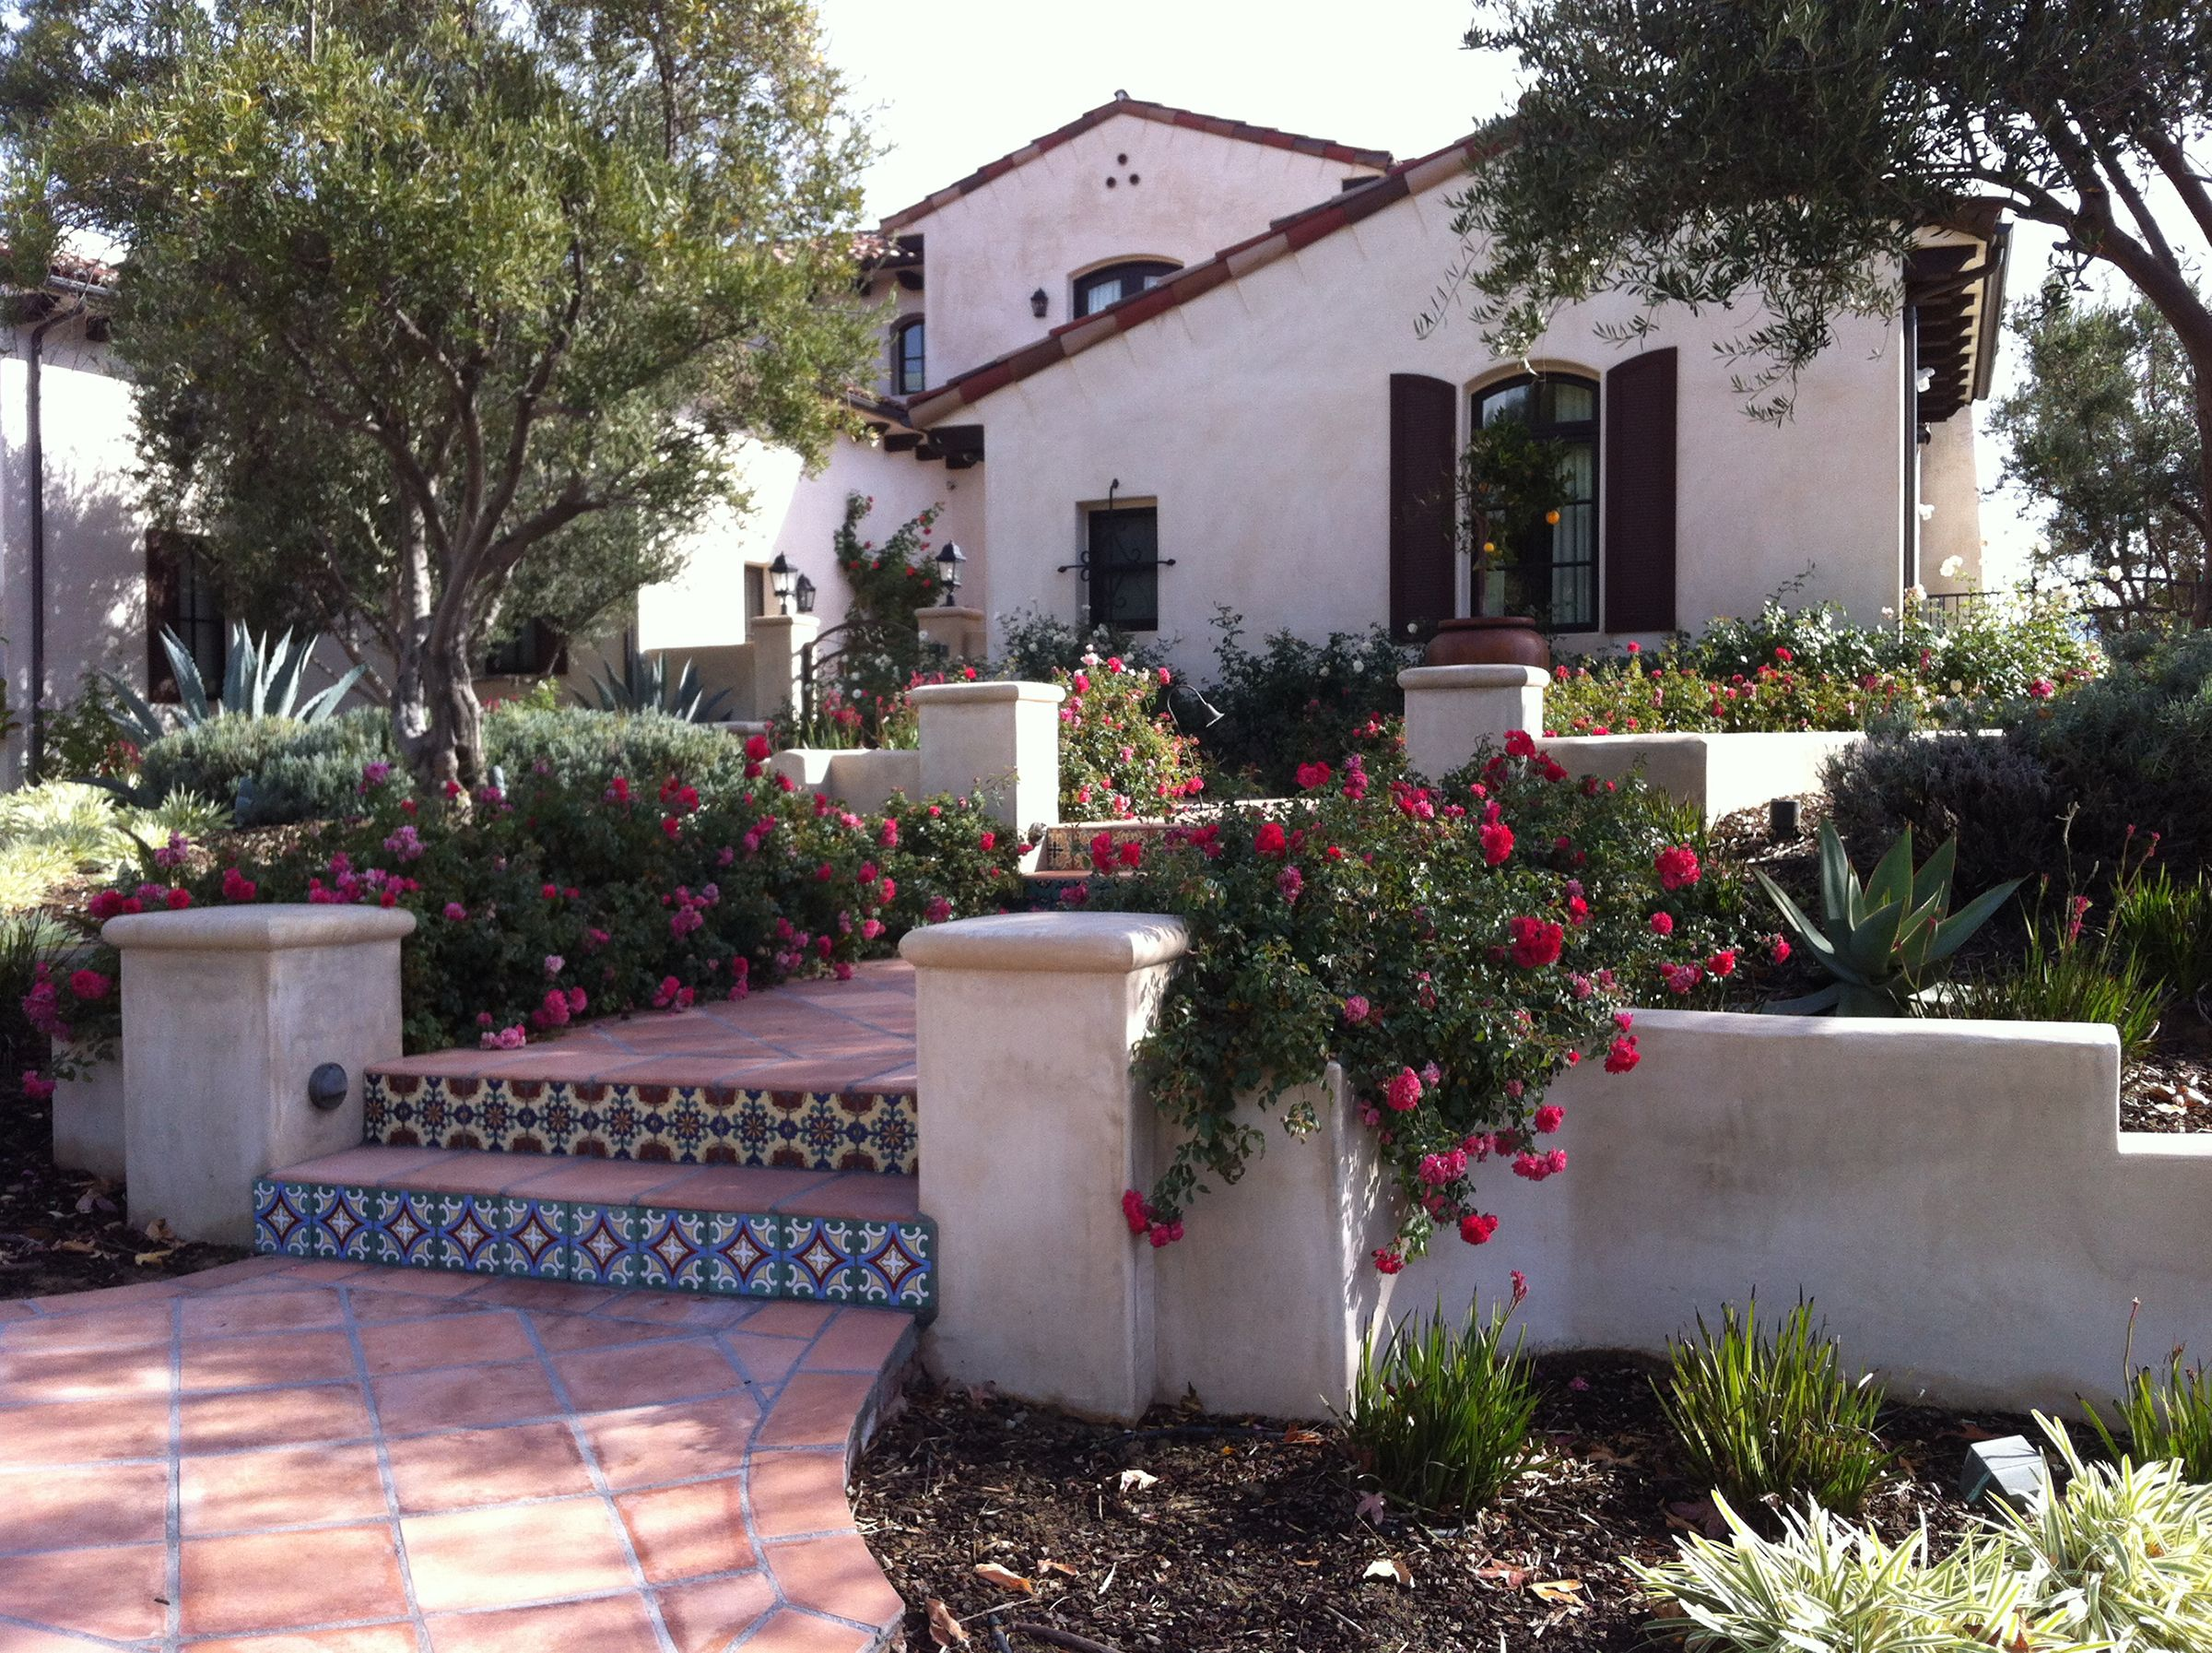 Spanish Revival Design By My Garden: Landscape Creations